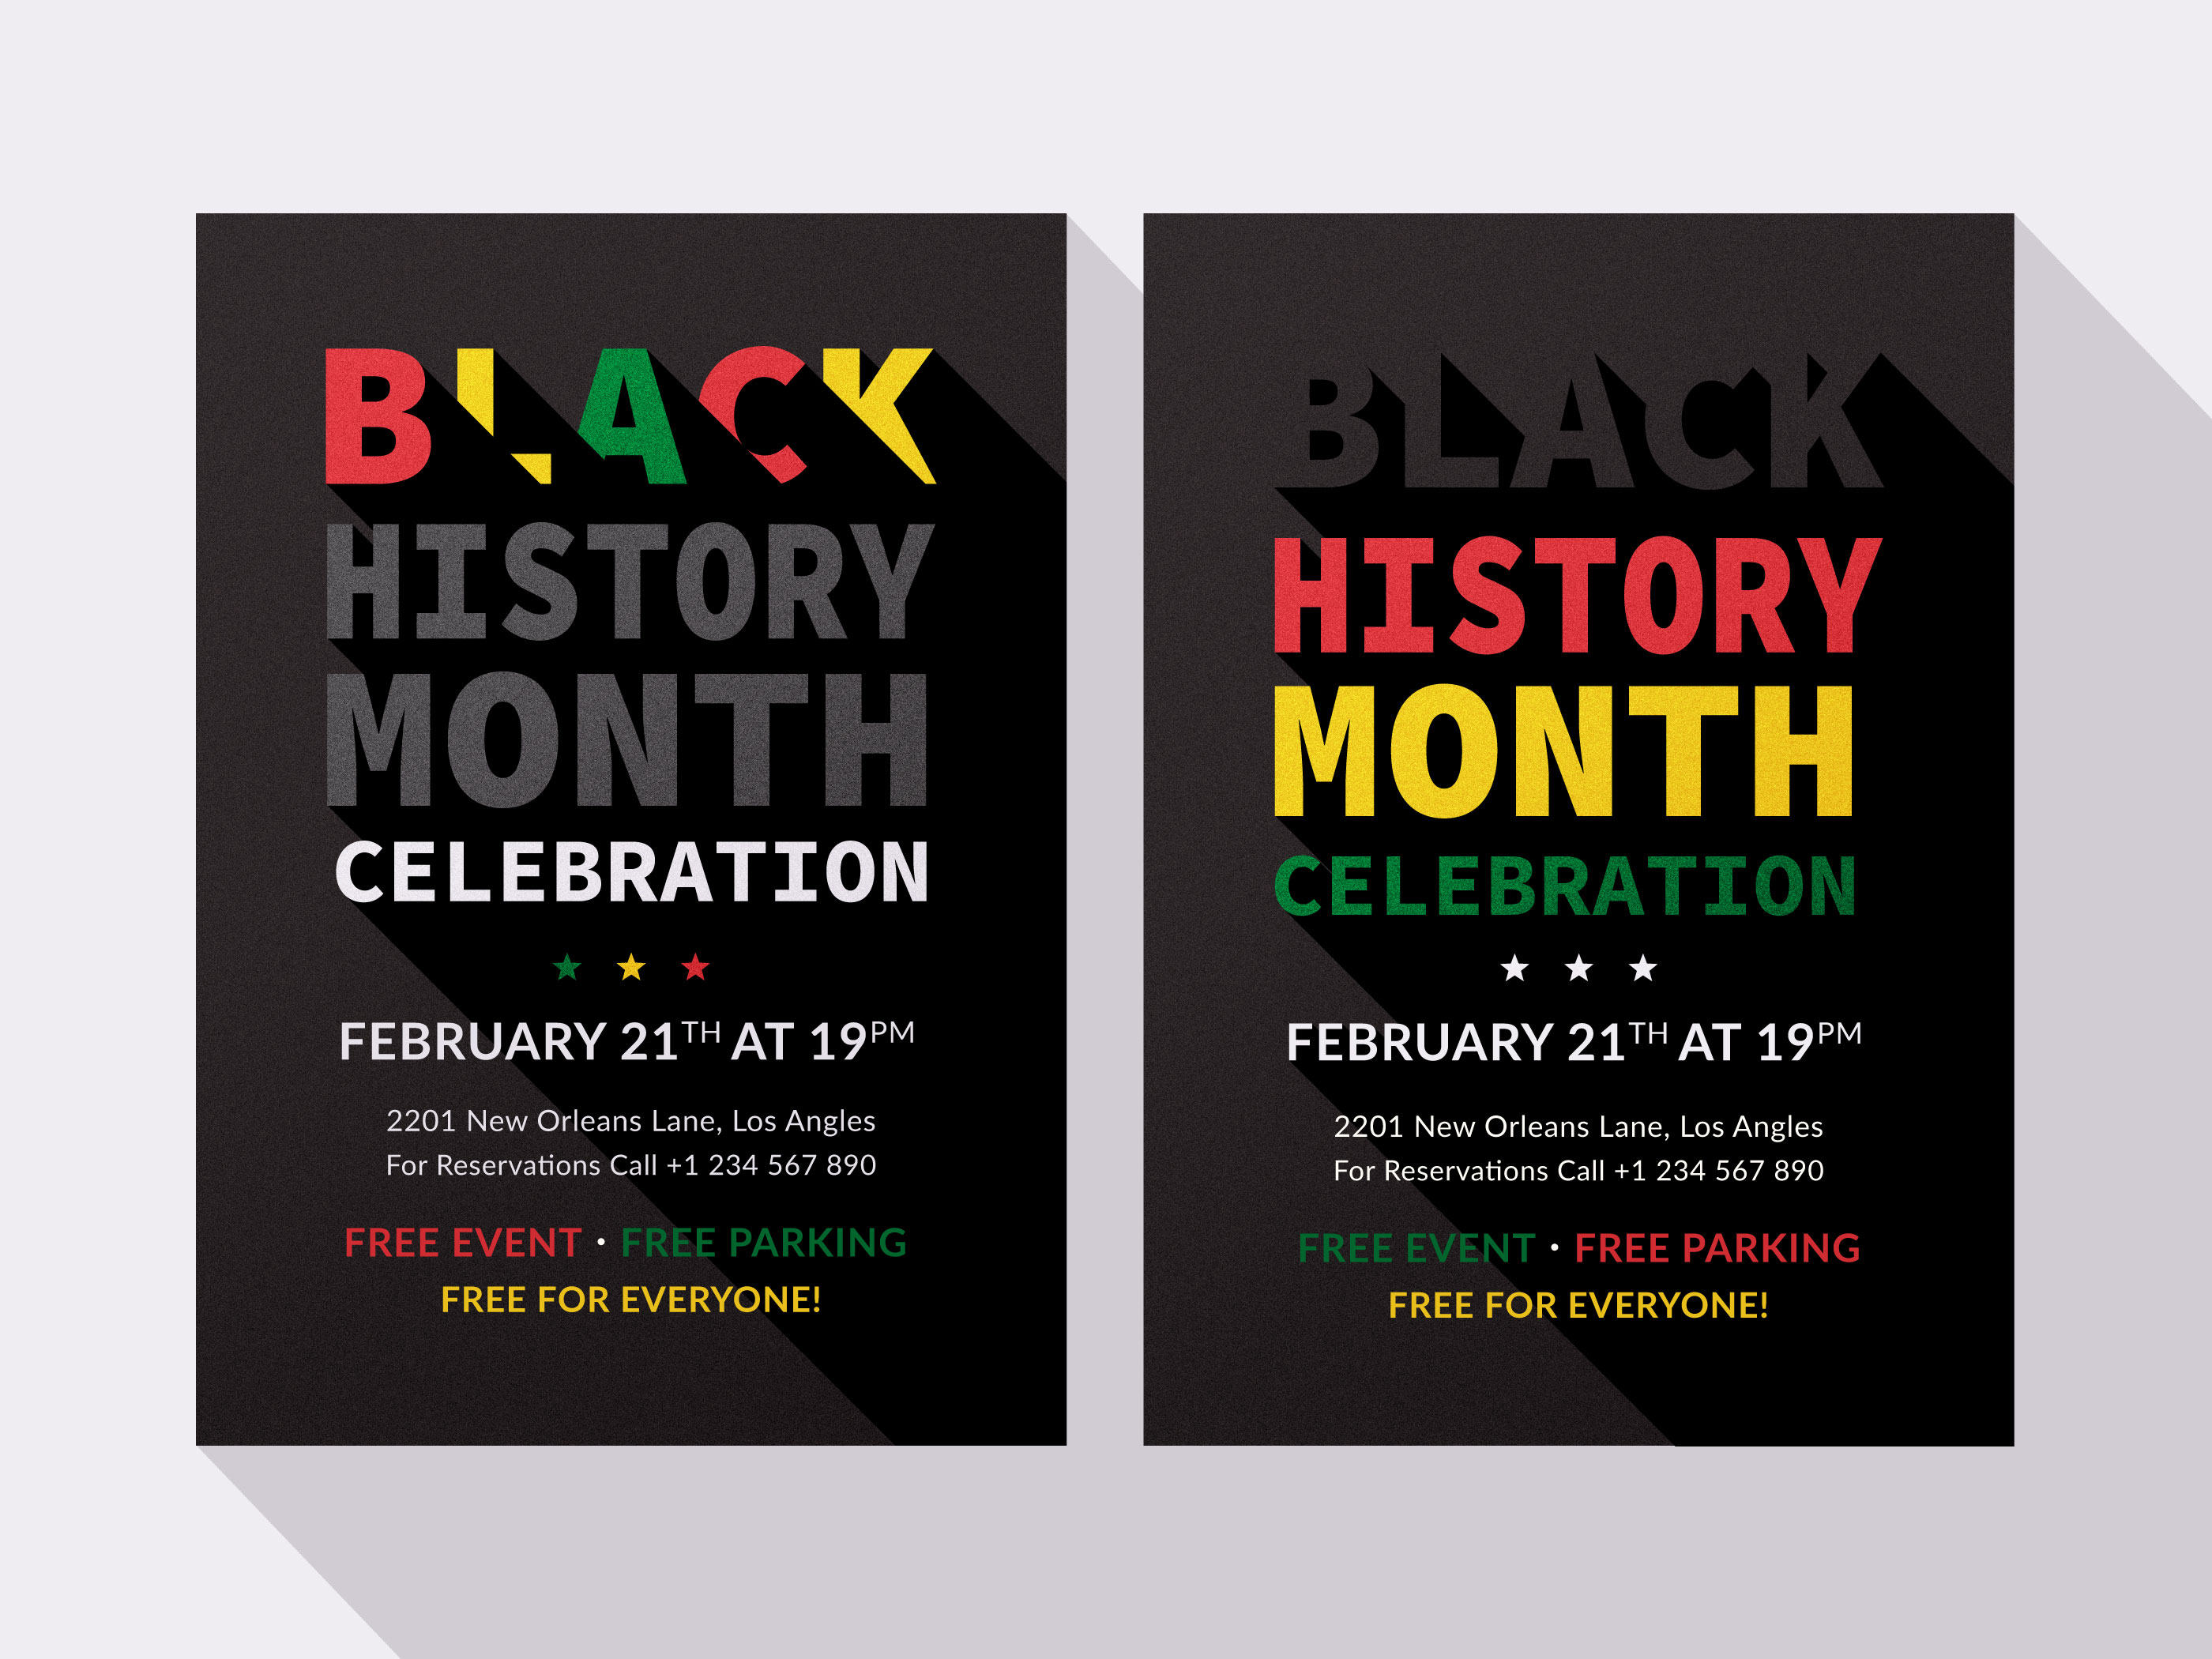 Black History Month Flyer Template from static.vecteezy.com